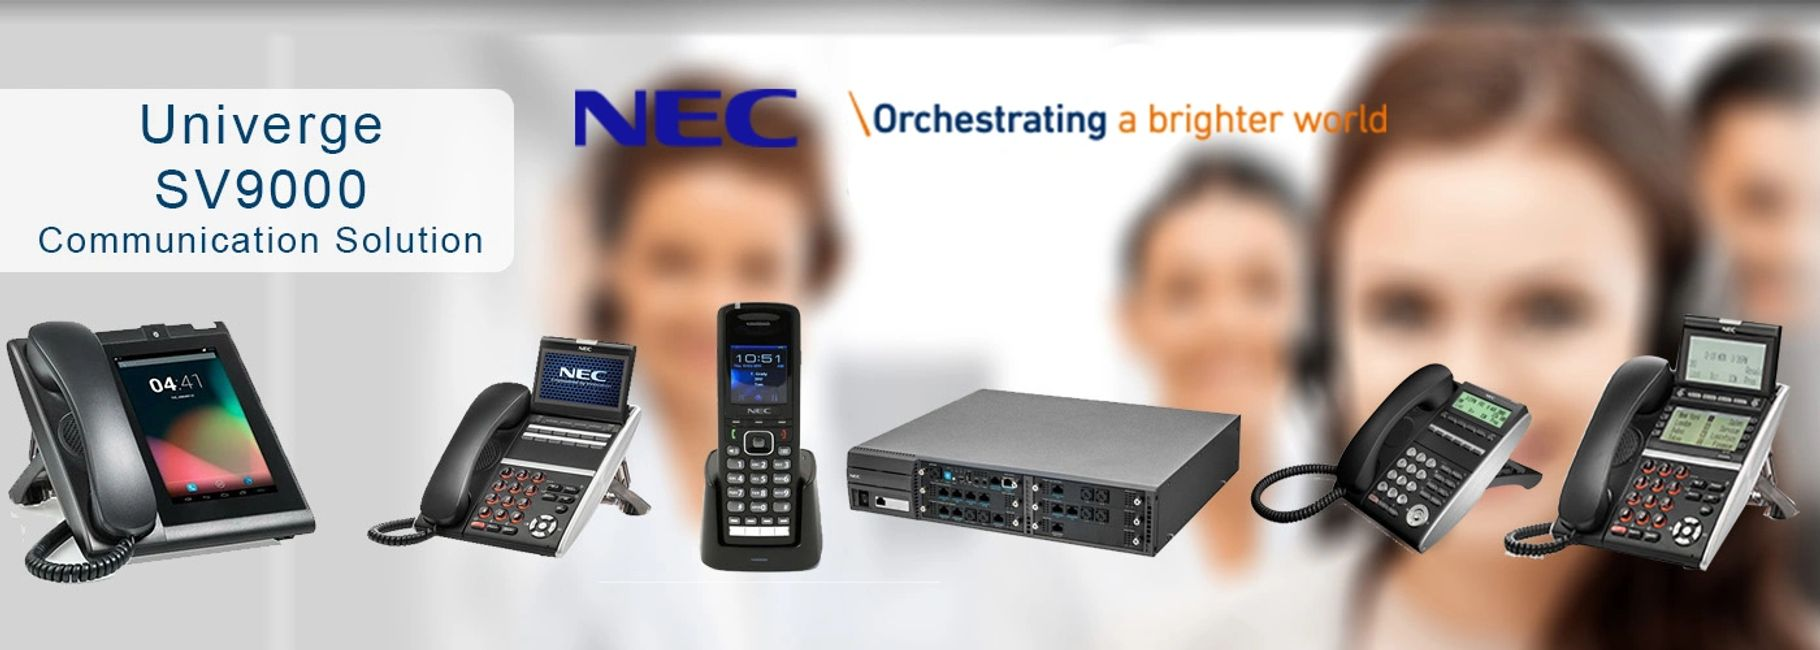 NEC UNIVERGE SV9000 SV9100 SV9300 SV9500 SL2100 business telephone systems VoIP IP PBX SIP SD-WAN